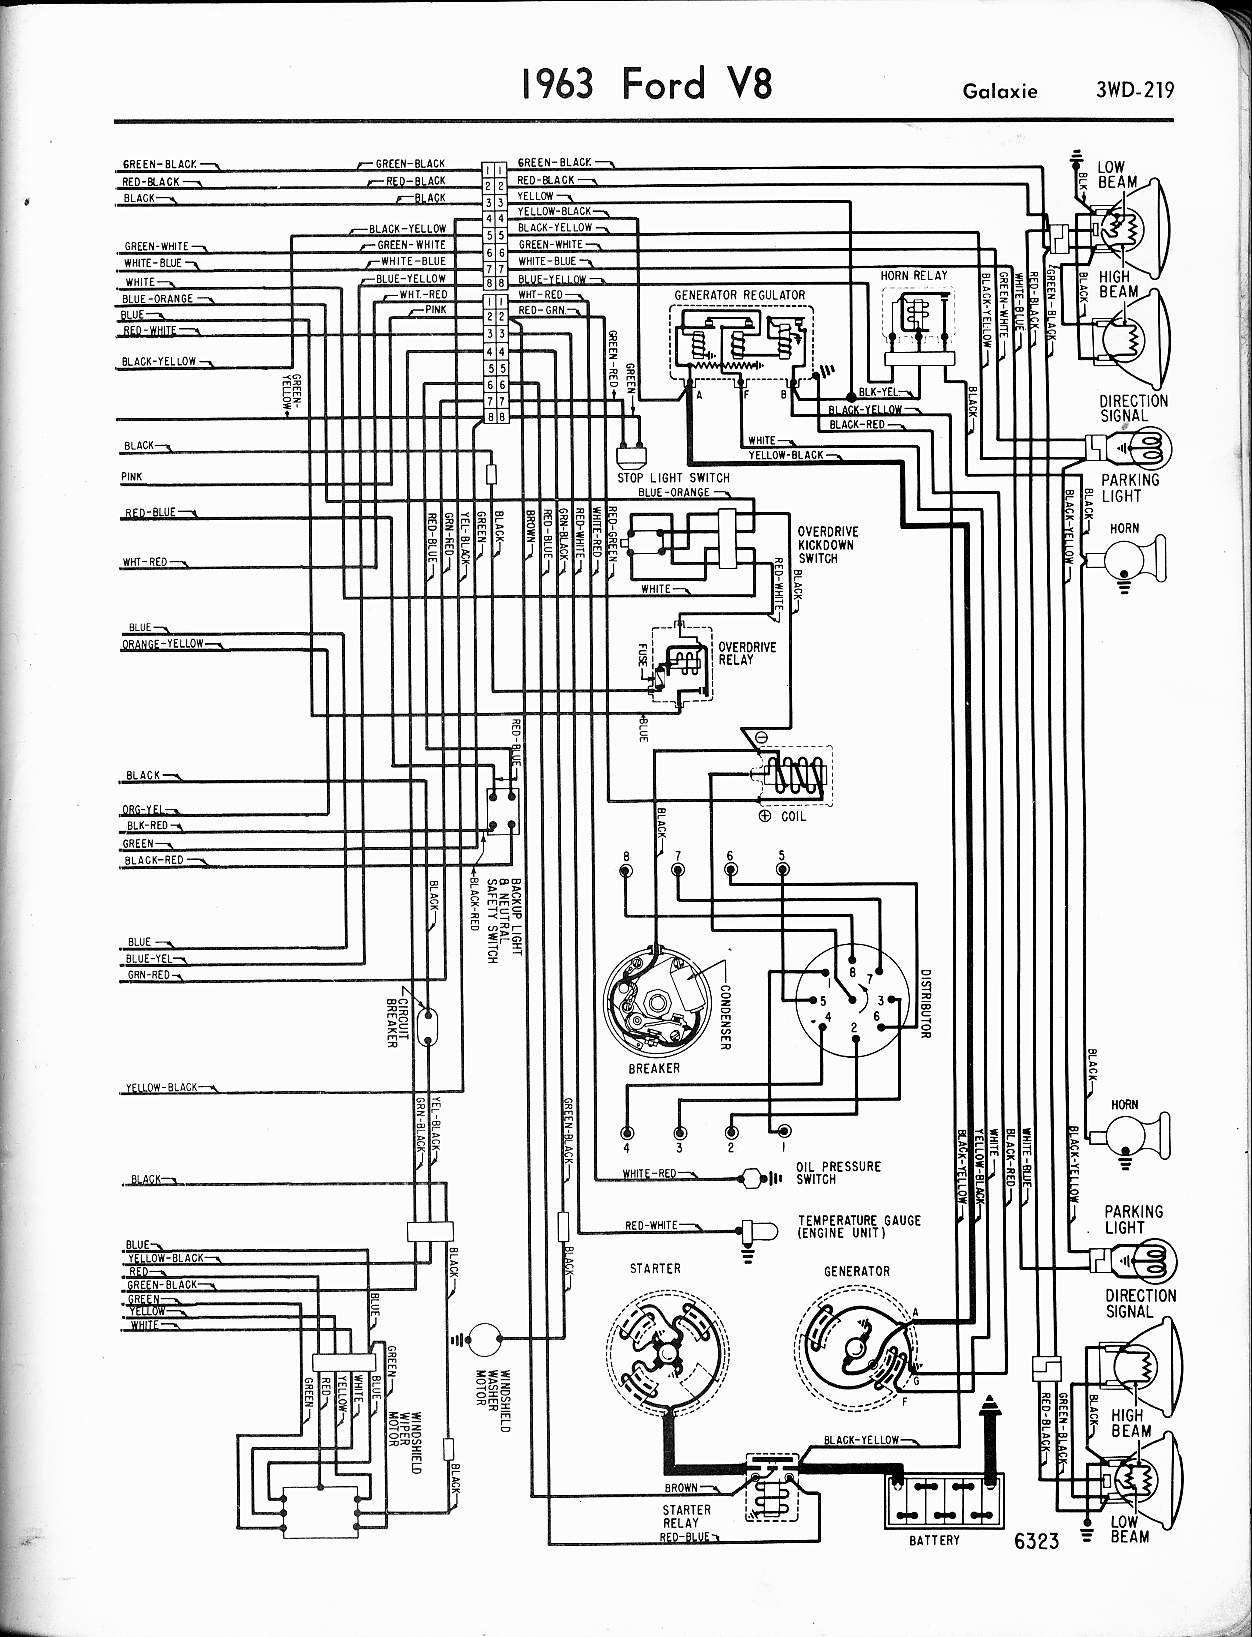 images for wiring diagram ford galaxy 2001 desktophddesignwall3d ga 2001  duramax wiring diagram get free high